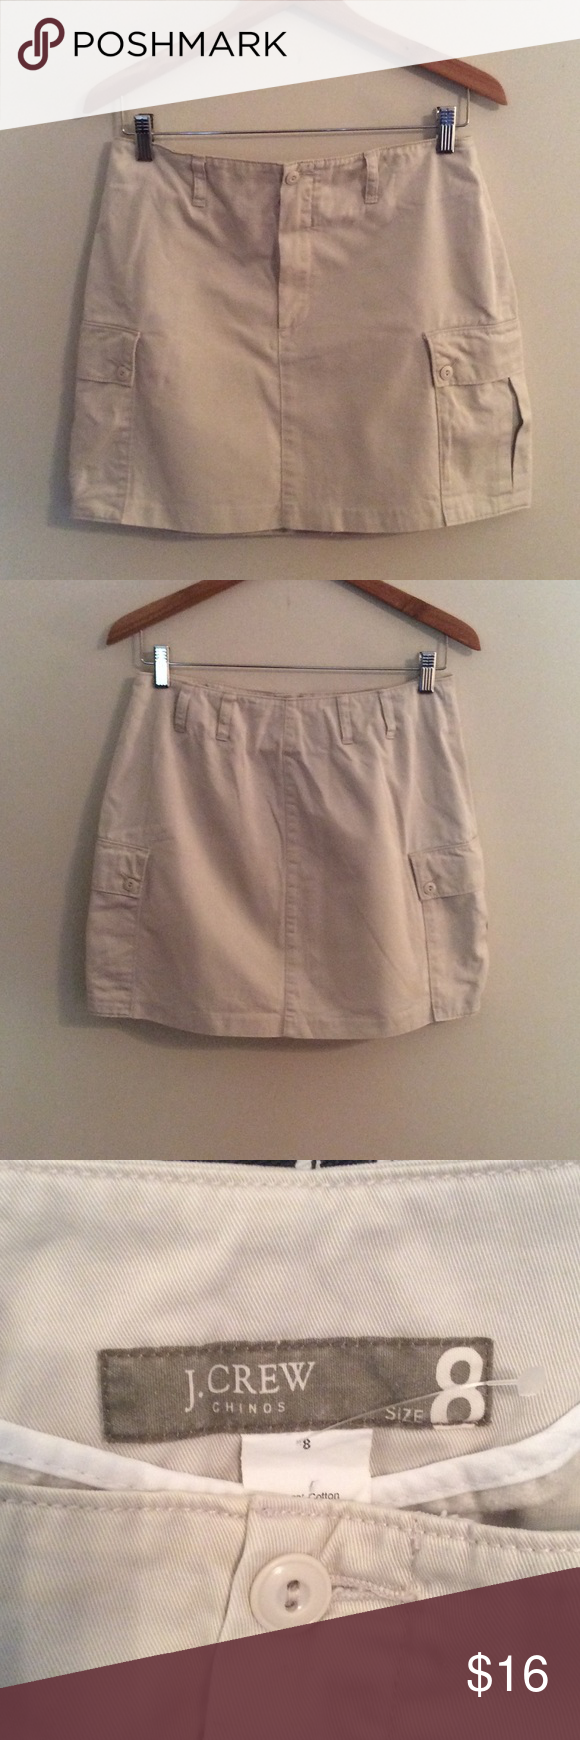 NWOT-J.Crew Khaki Skirt New Size 8 Adorable skirt. Never worn. Without retail tags. J. Crew Skirts Mini